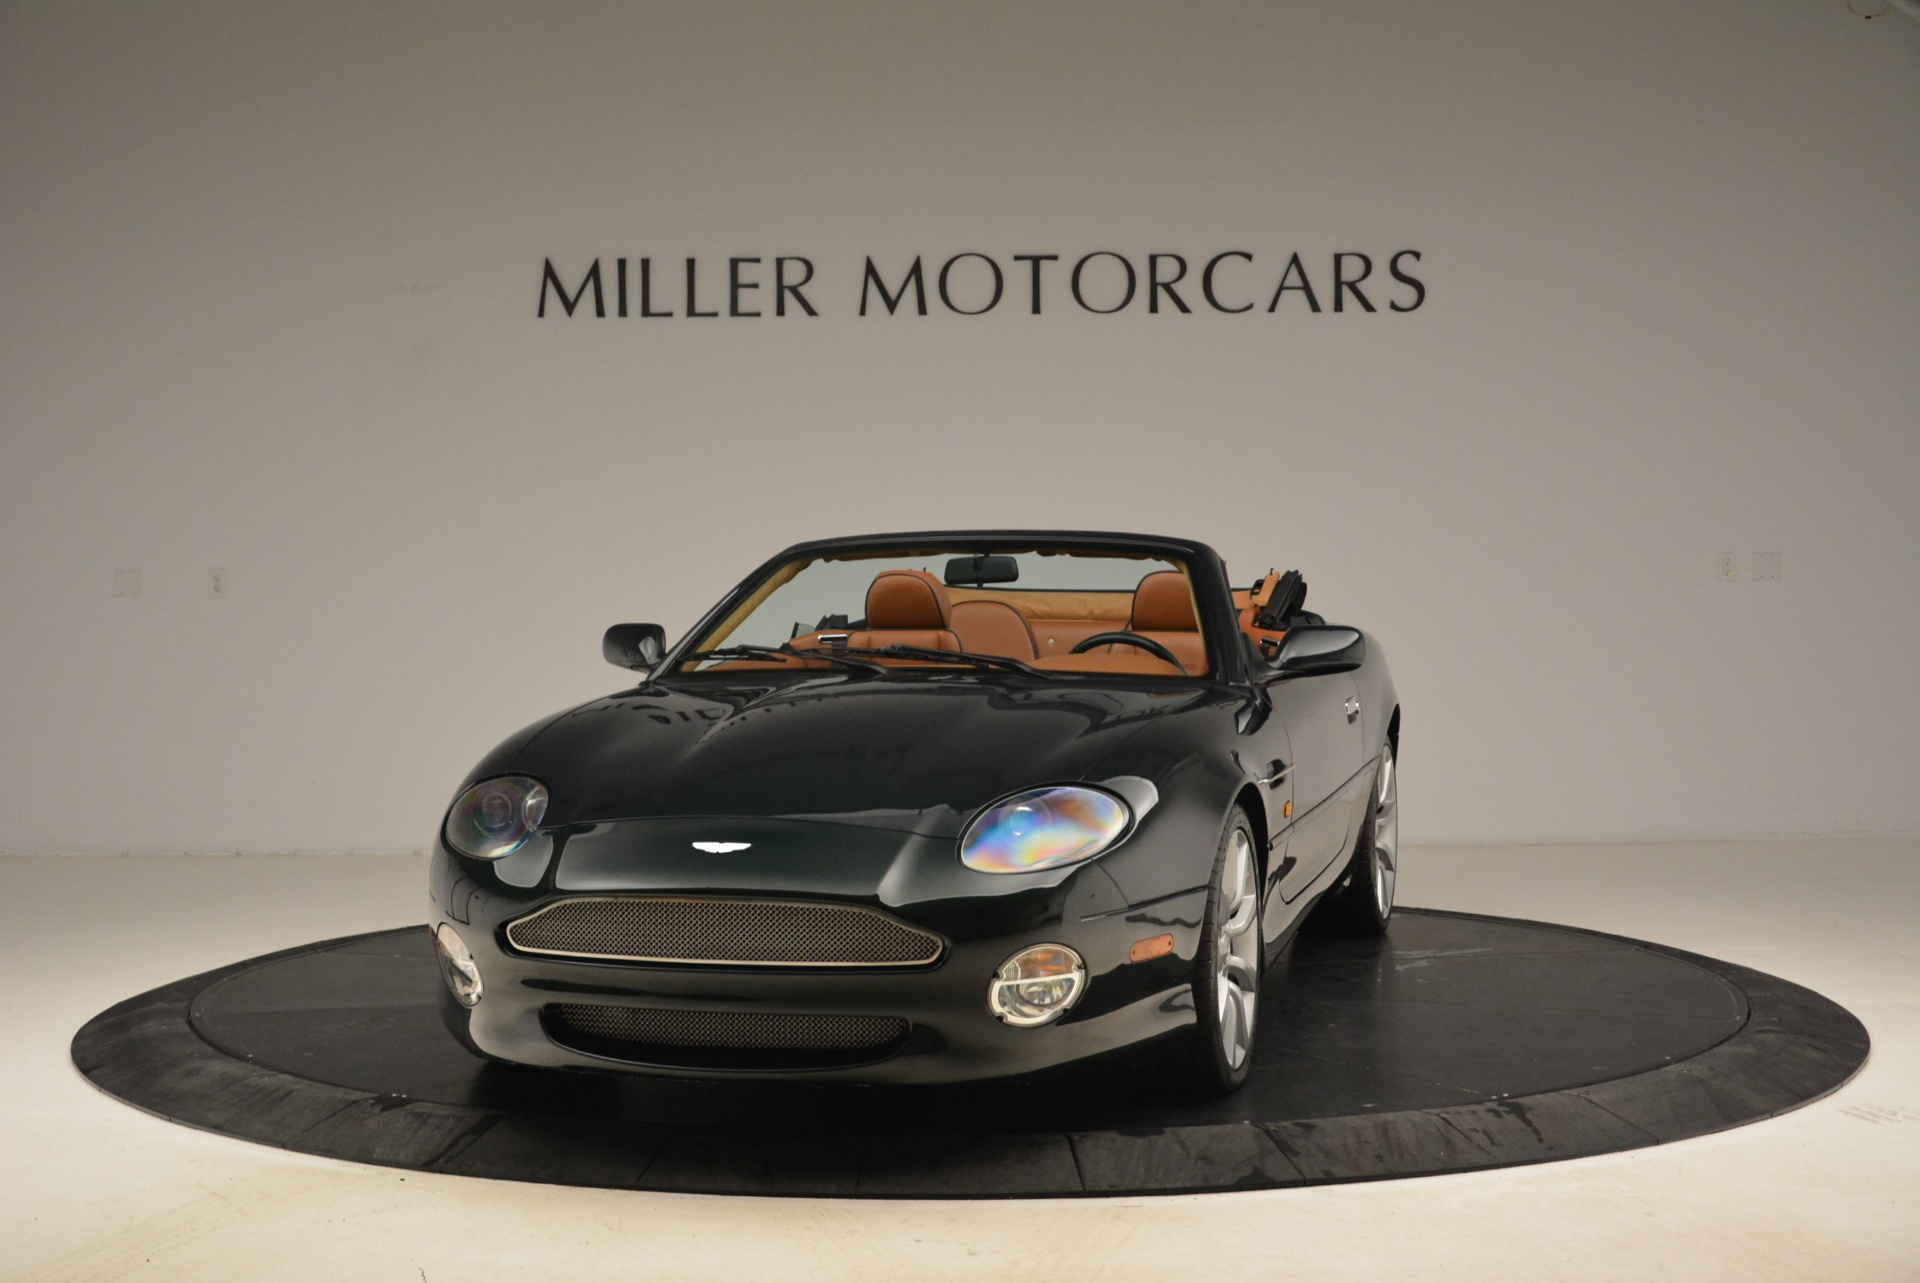 Pre Owned 2003 Aston Martin Db7 Vantage Volante For Sale Special Pricing Aston Martin Of Greenwich Stock 7307